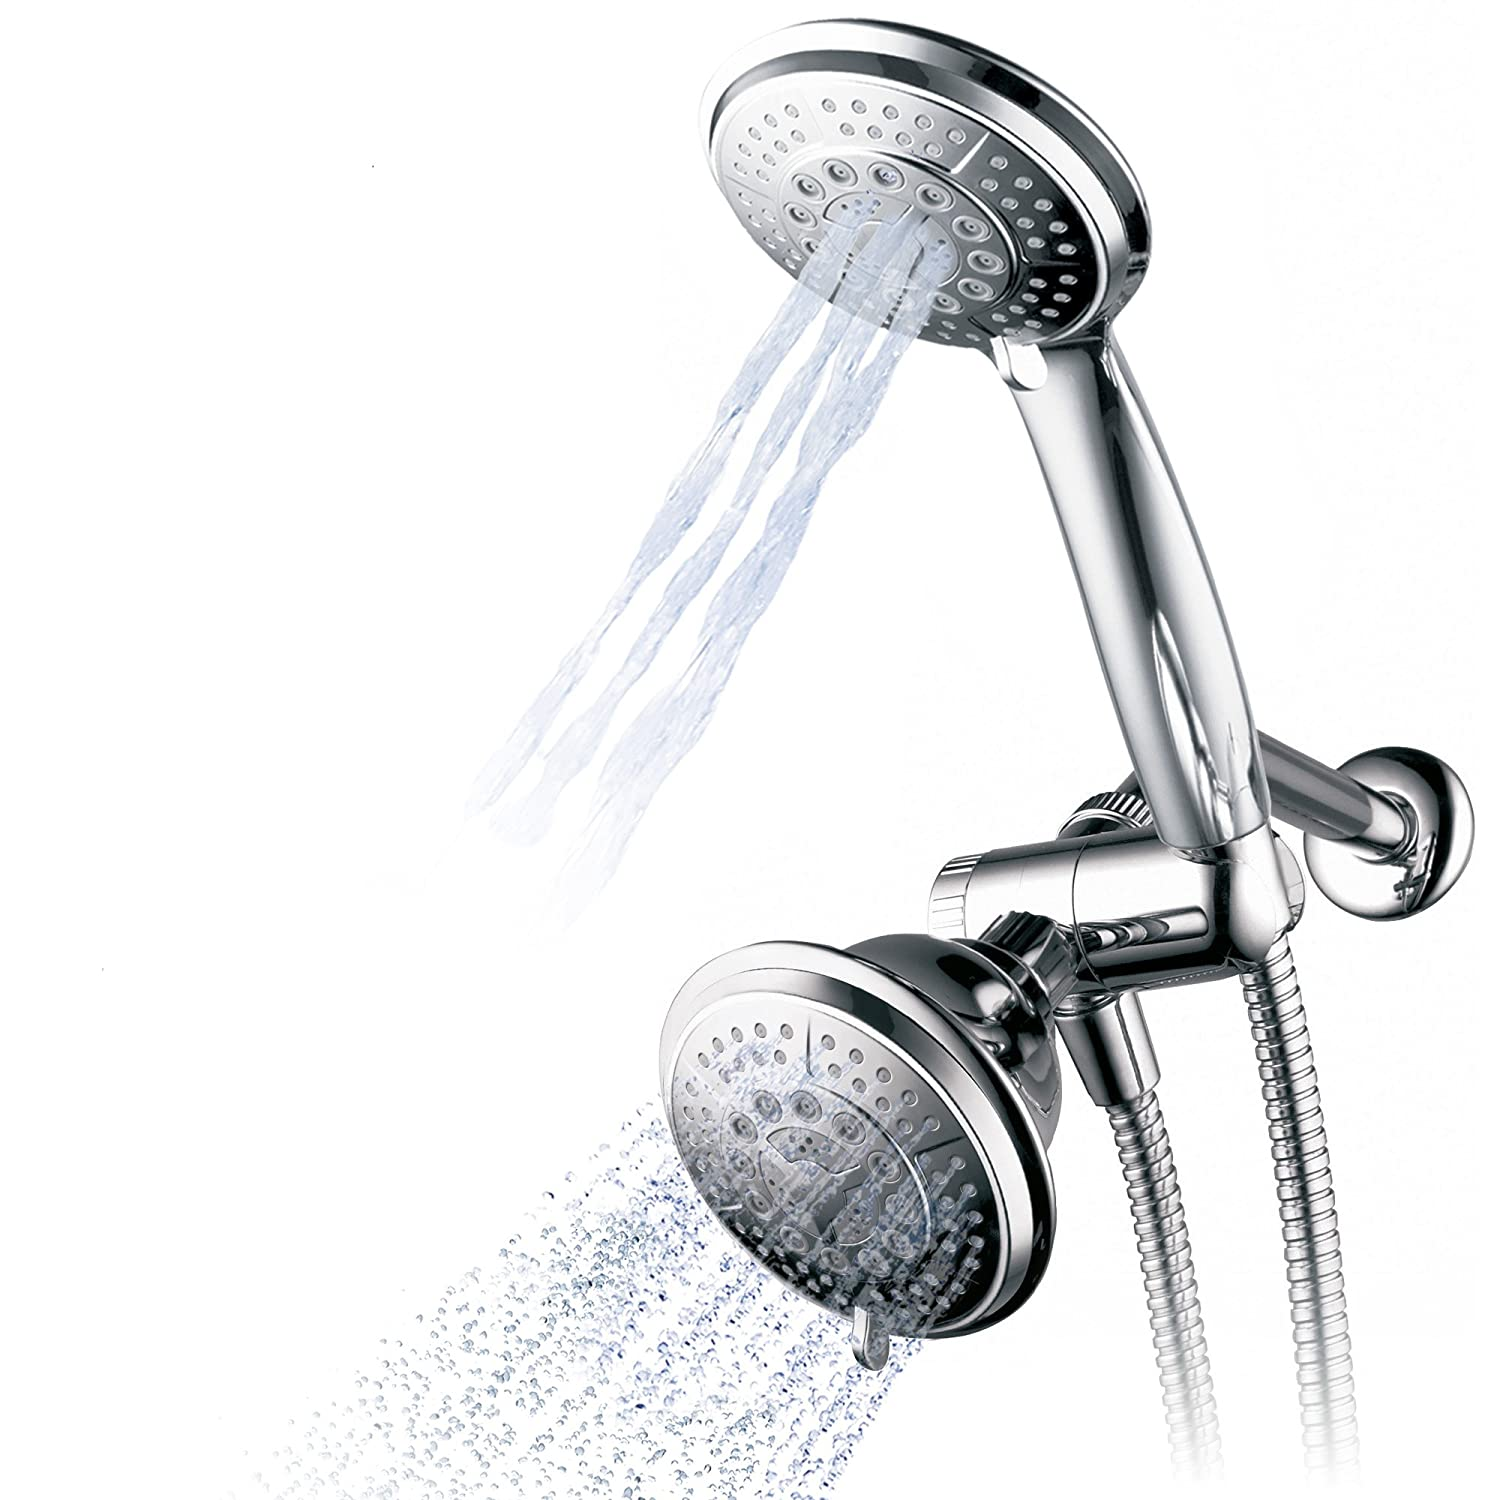 Hydroluxe 1433 Handheld Shower...